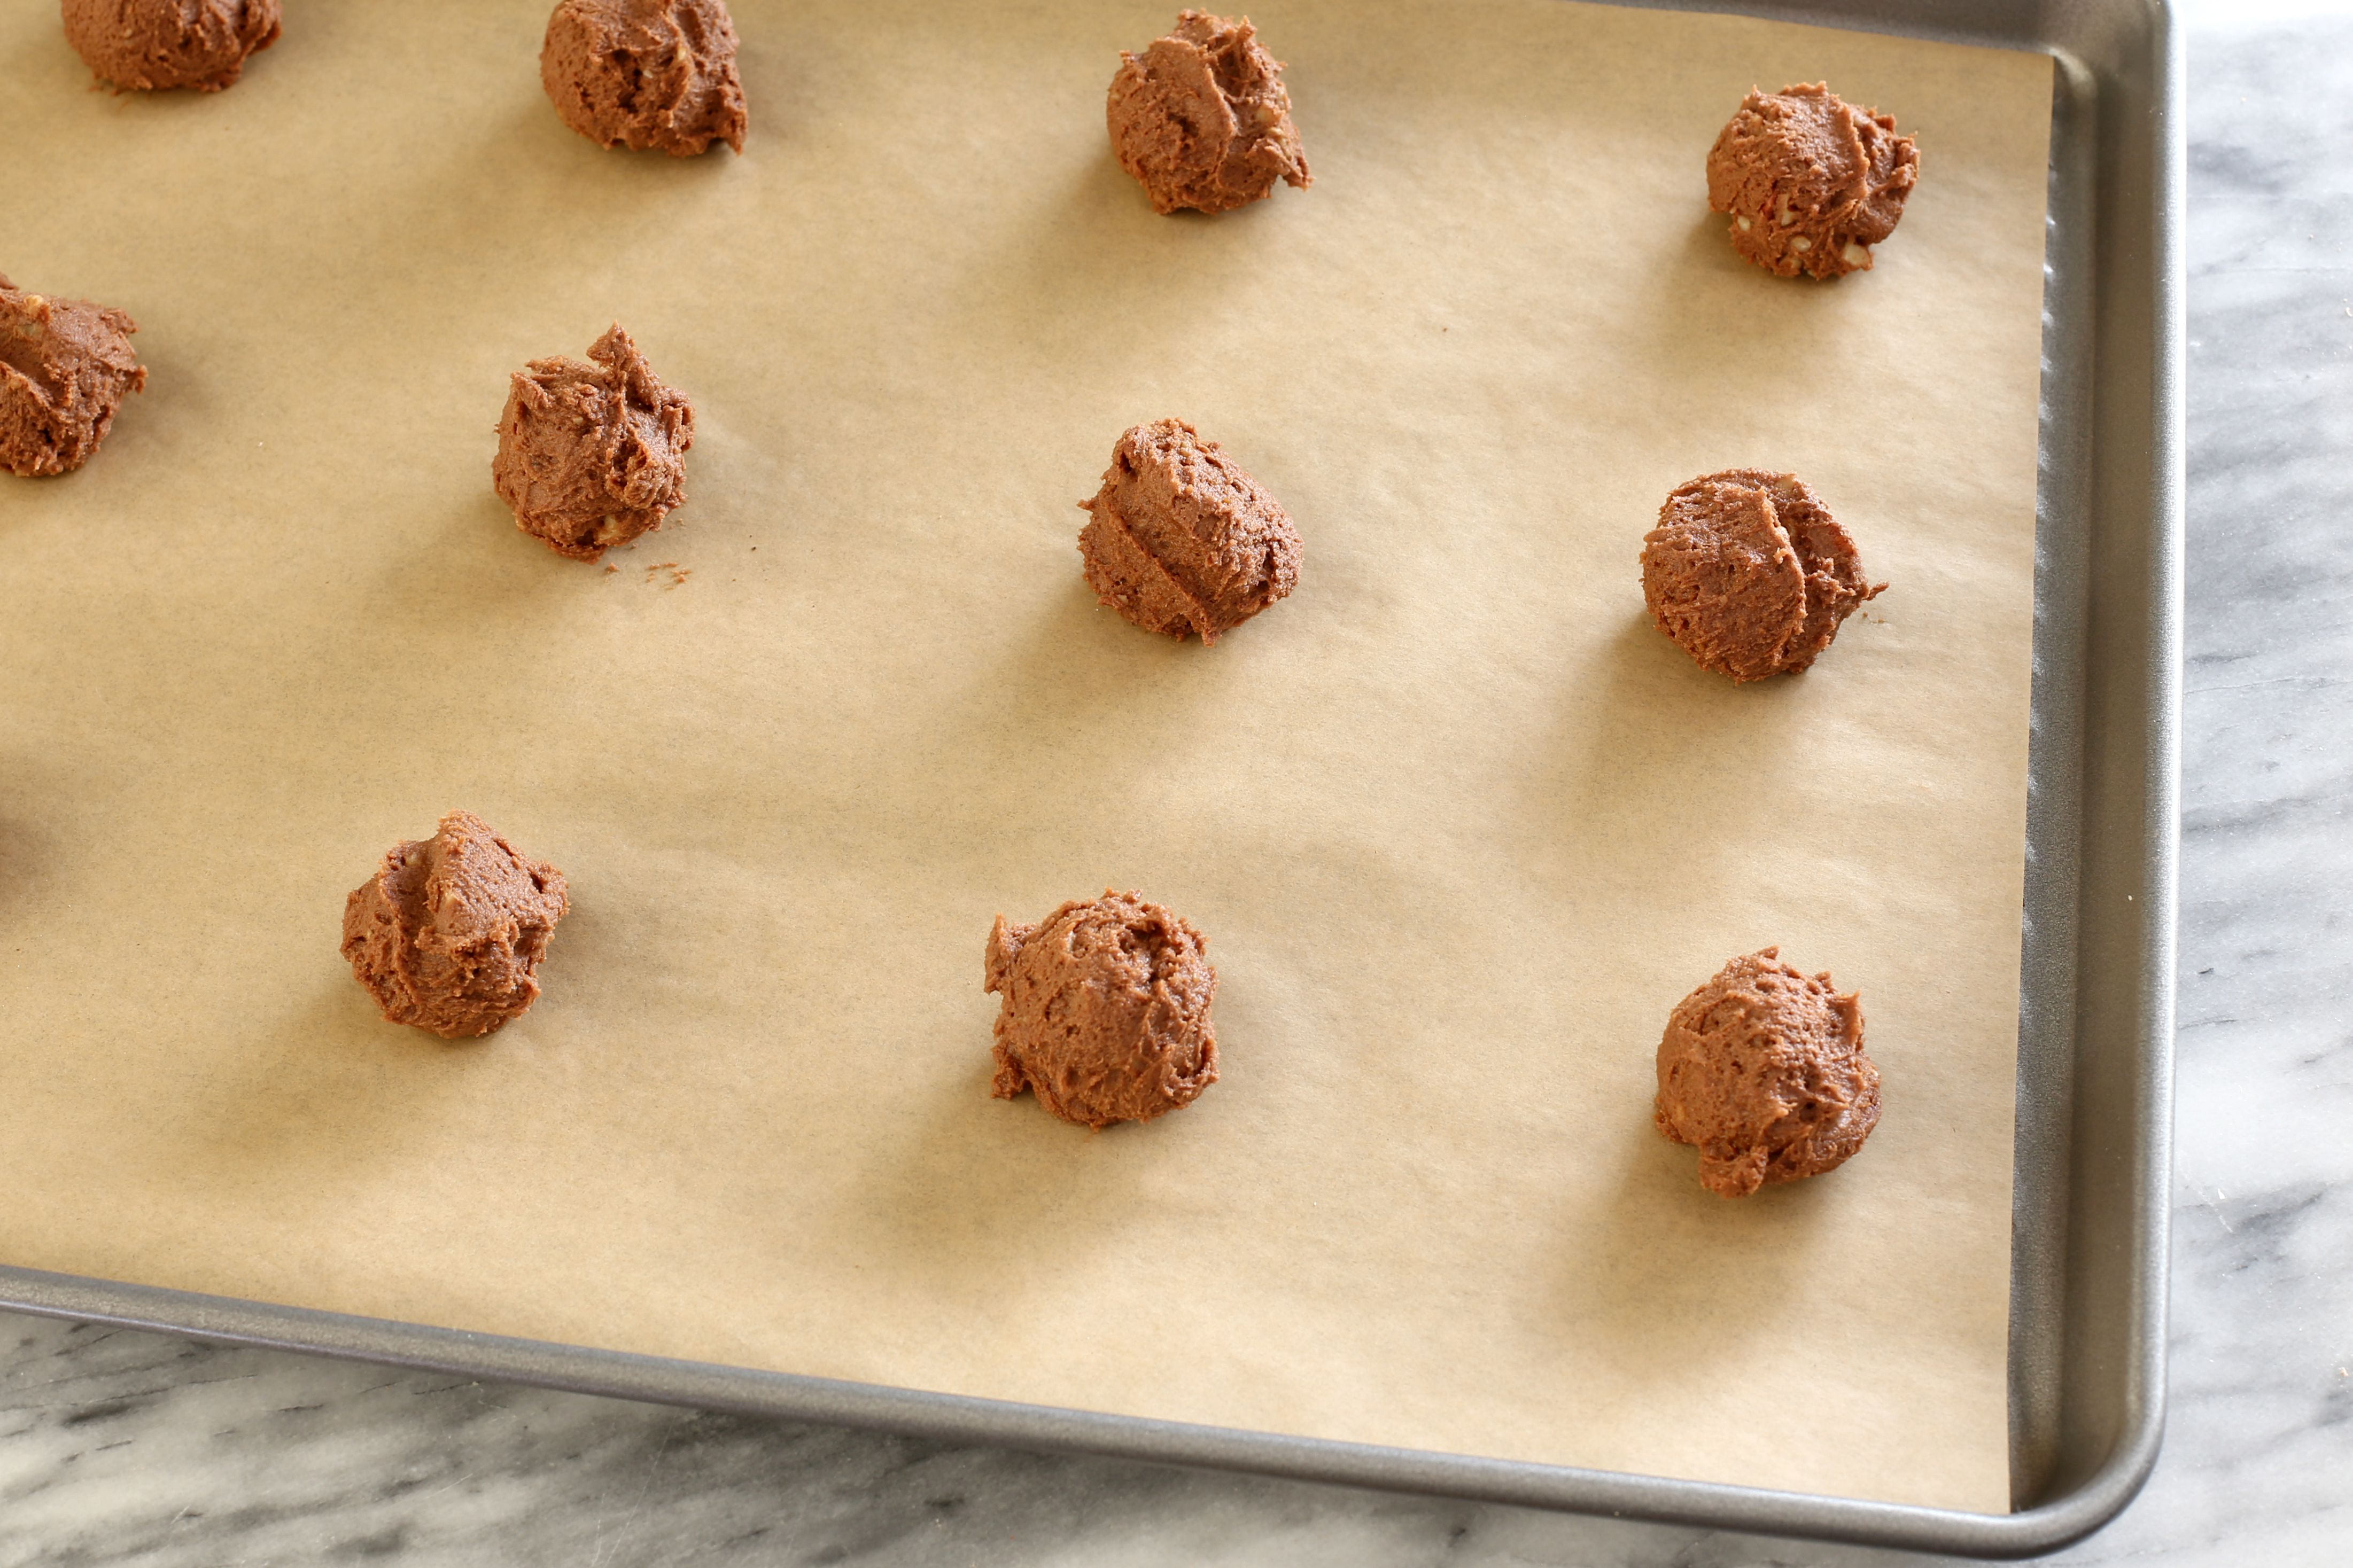 Chocolate drop cookies ready for the oven.